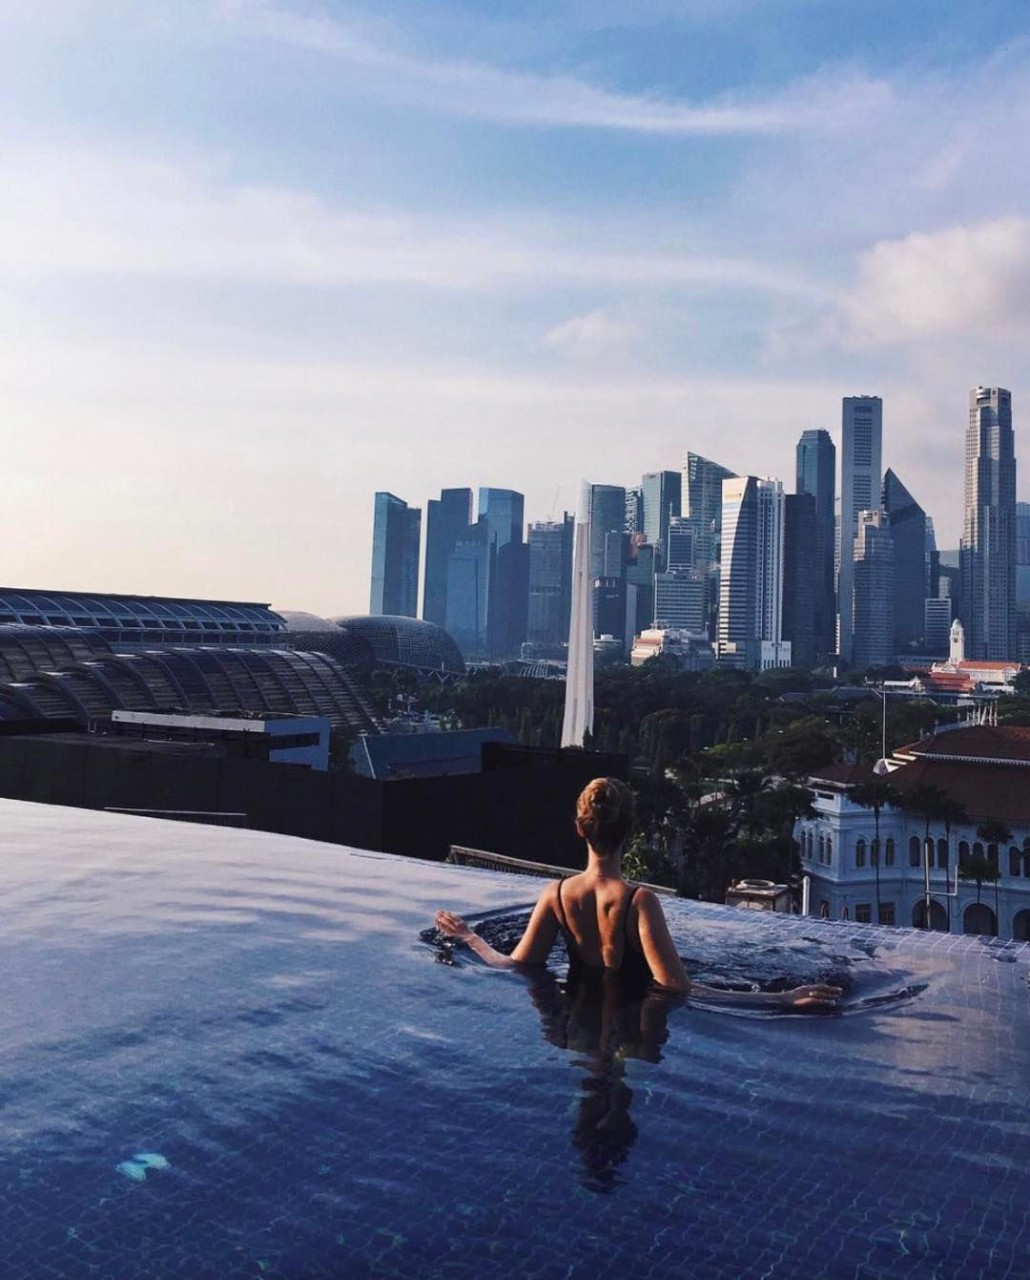 5 Hotels In Singapore With Infinity Pools To Stay At For Under 250